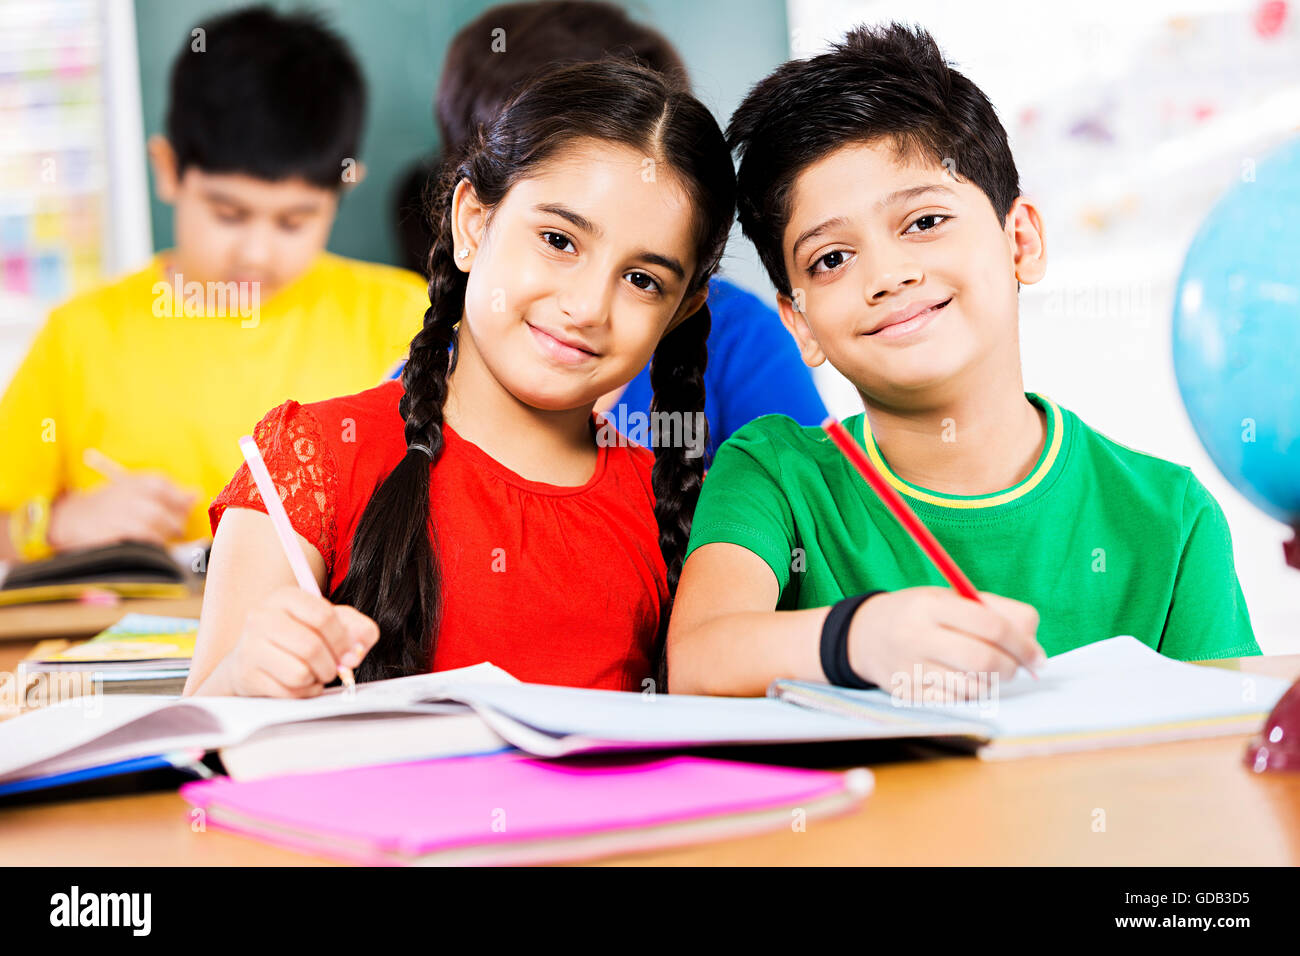 2 kids girl and boy friends school student studying in a classroom